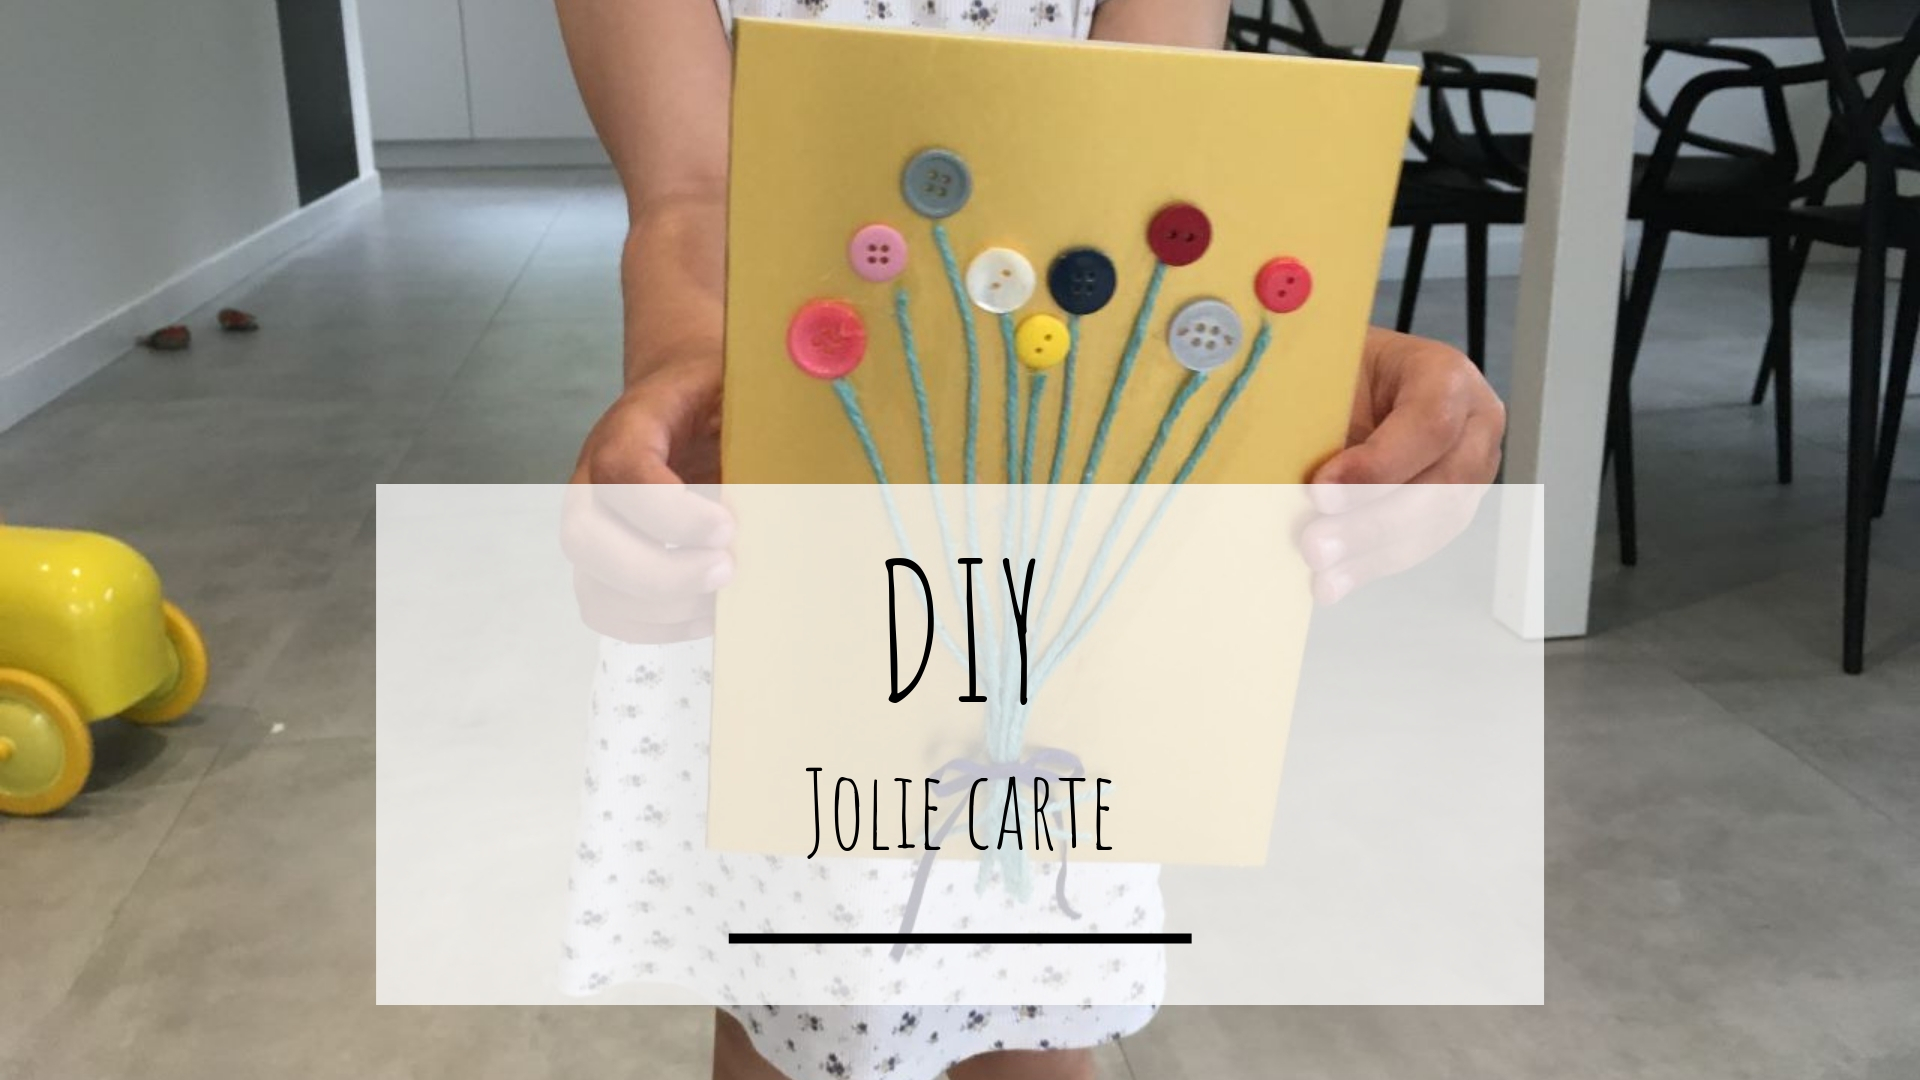 DIY jolie carte